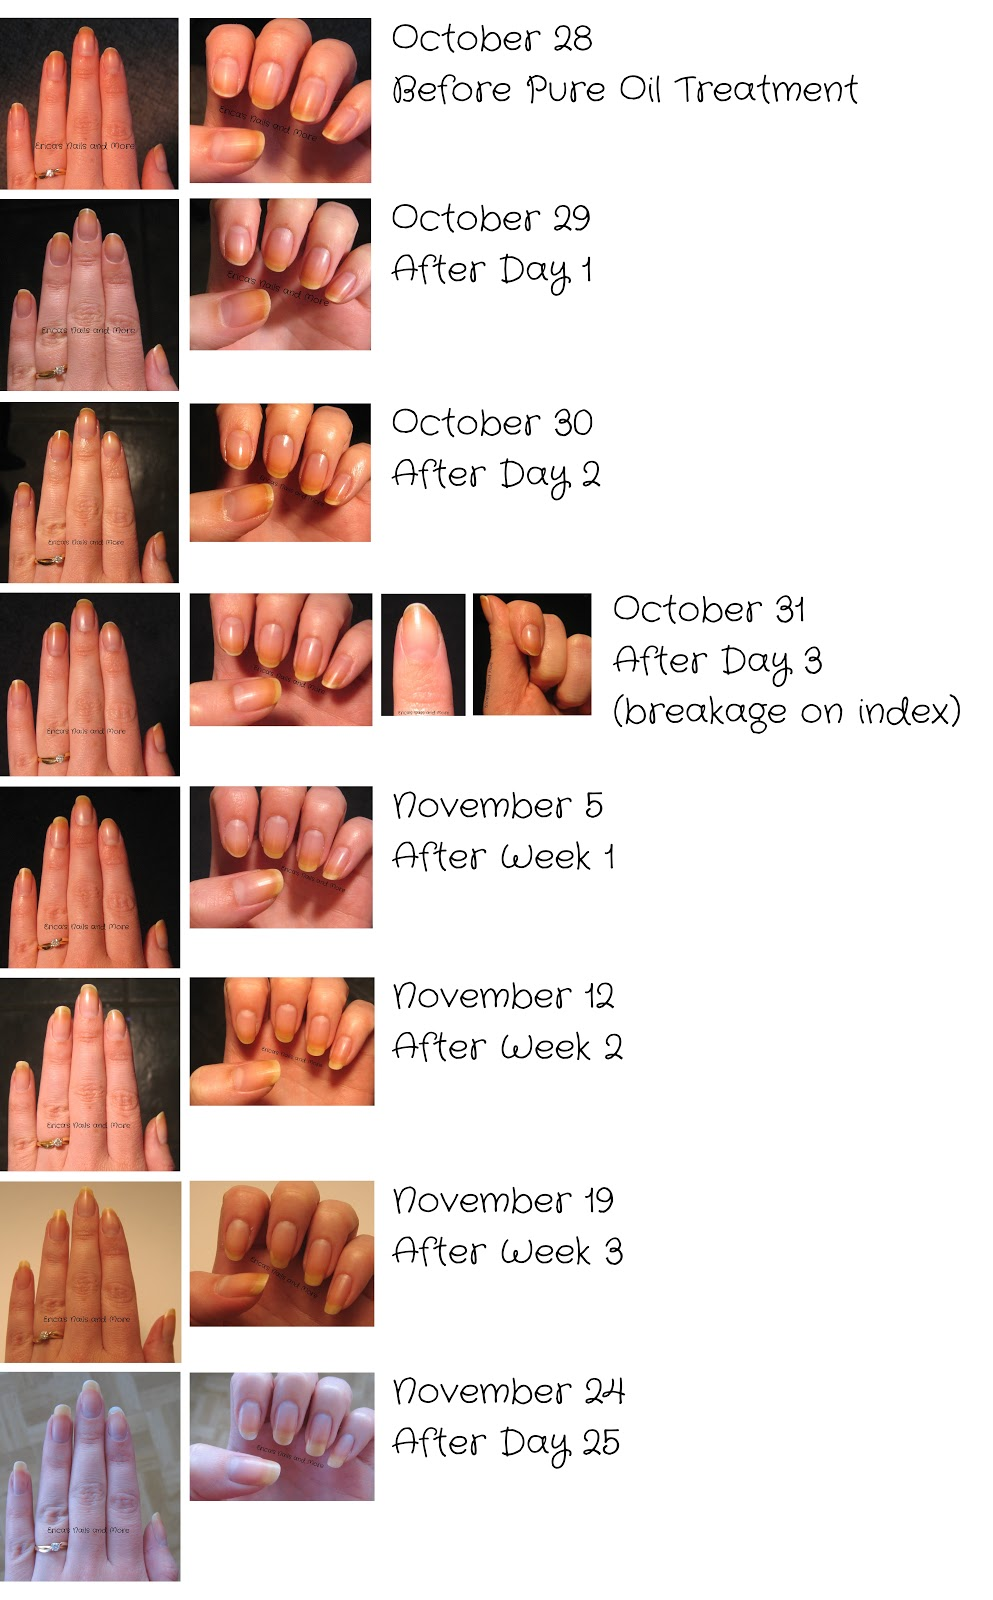 Ericas Nails And More Simple Nail Art Tips PureTM